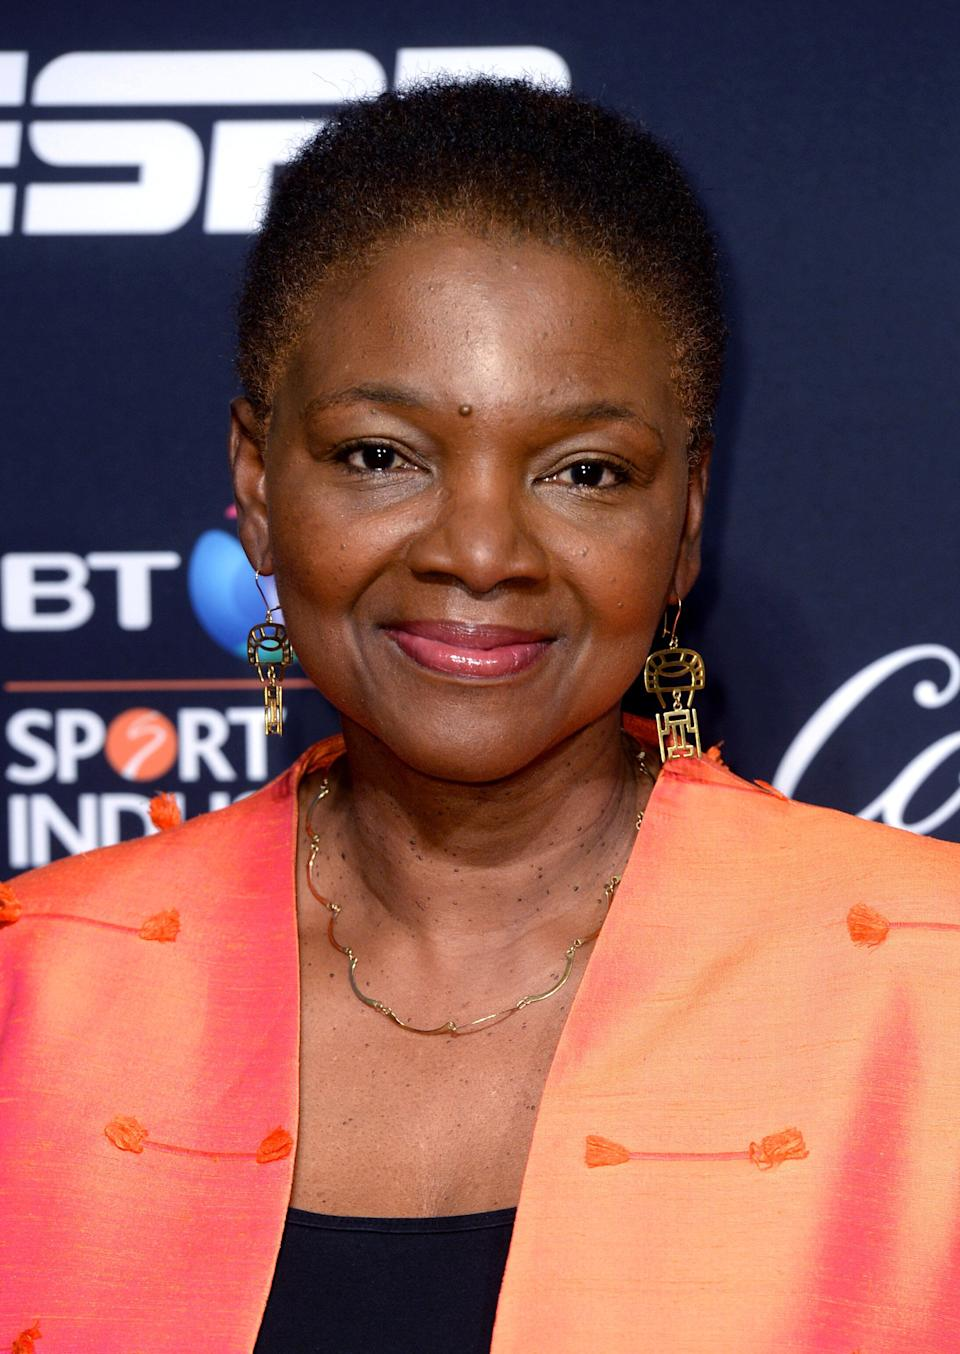 Valerie Amos. (Photo: Doug Peters/EMPICS Entertainment)